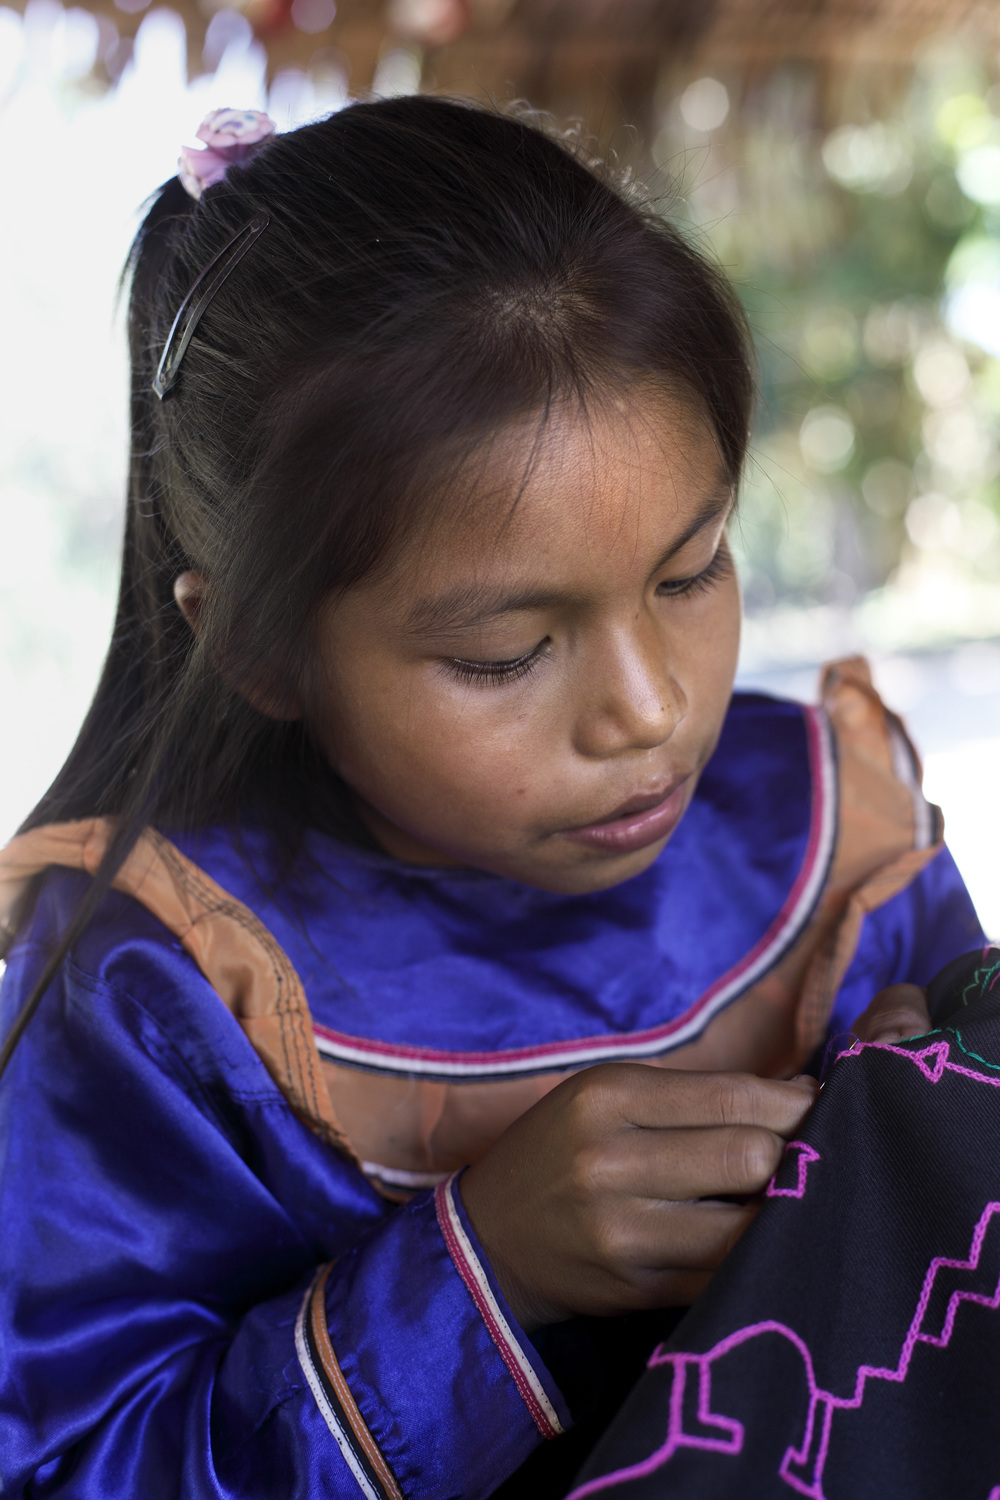 Shipibo girl embroiders 'kene'', meaning 'designs'. Traditionally inspired by visionary experiences of the patterns of plant spirits seen in healing ceremonies (Photo Alianza Arkana)